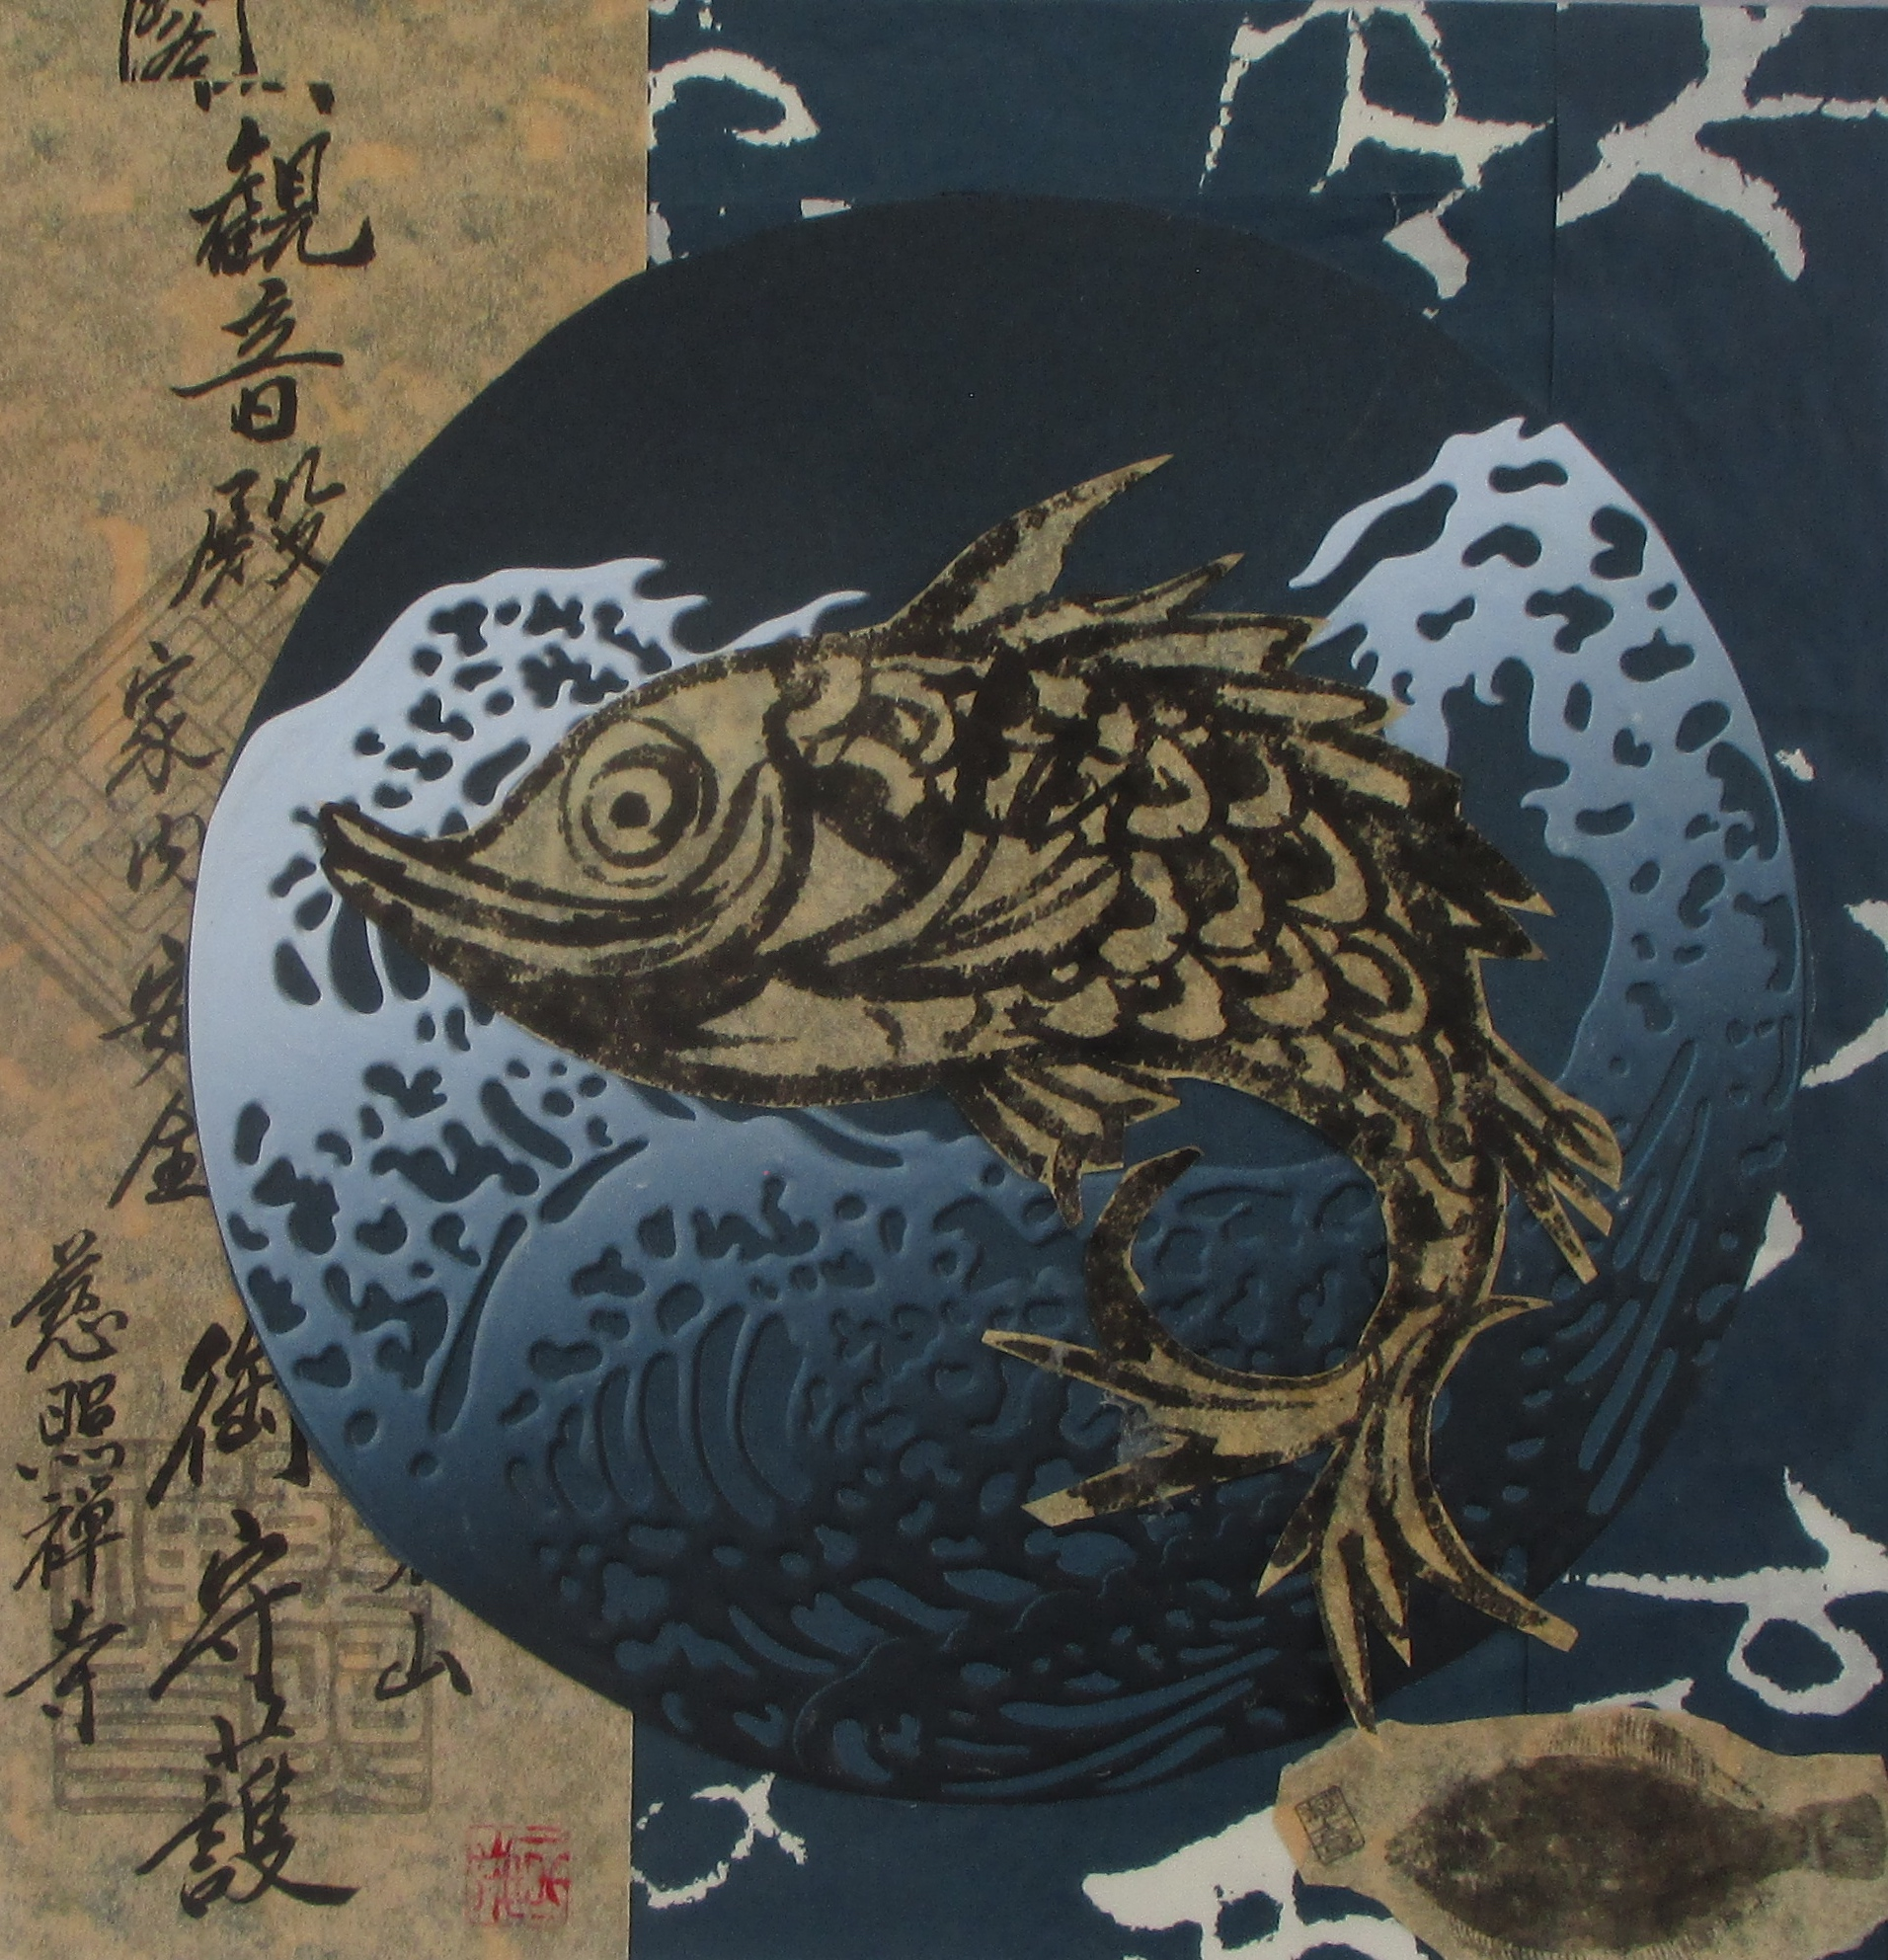 Koi  紅白  kōhaku  Collage, Ink, 12 x 12 matted, SOLD